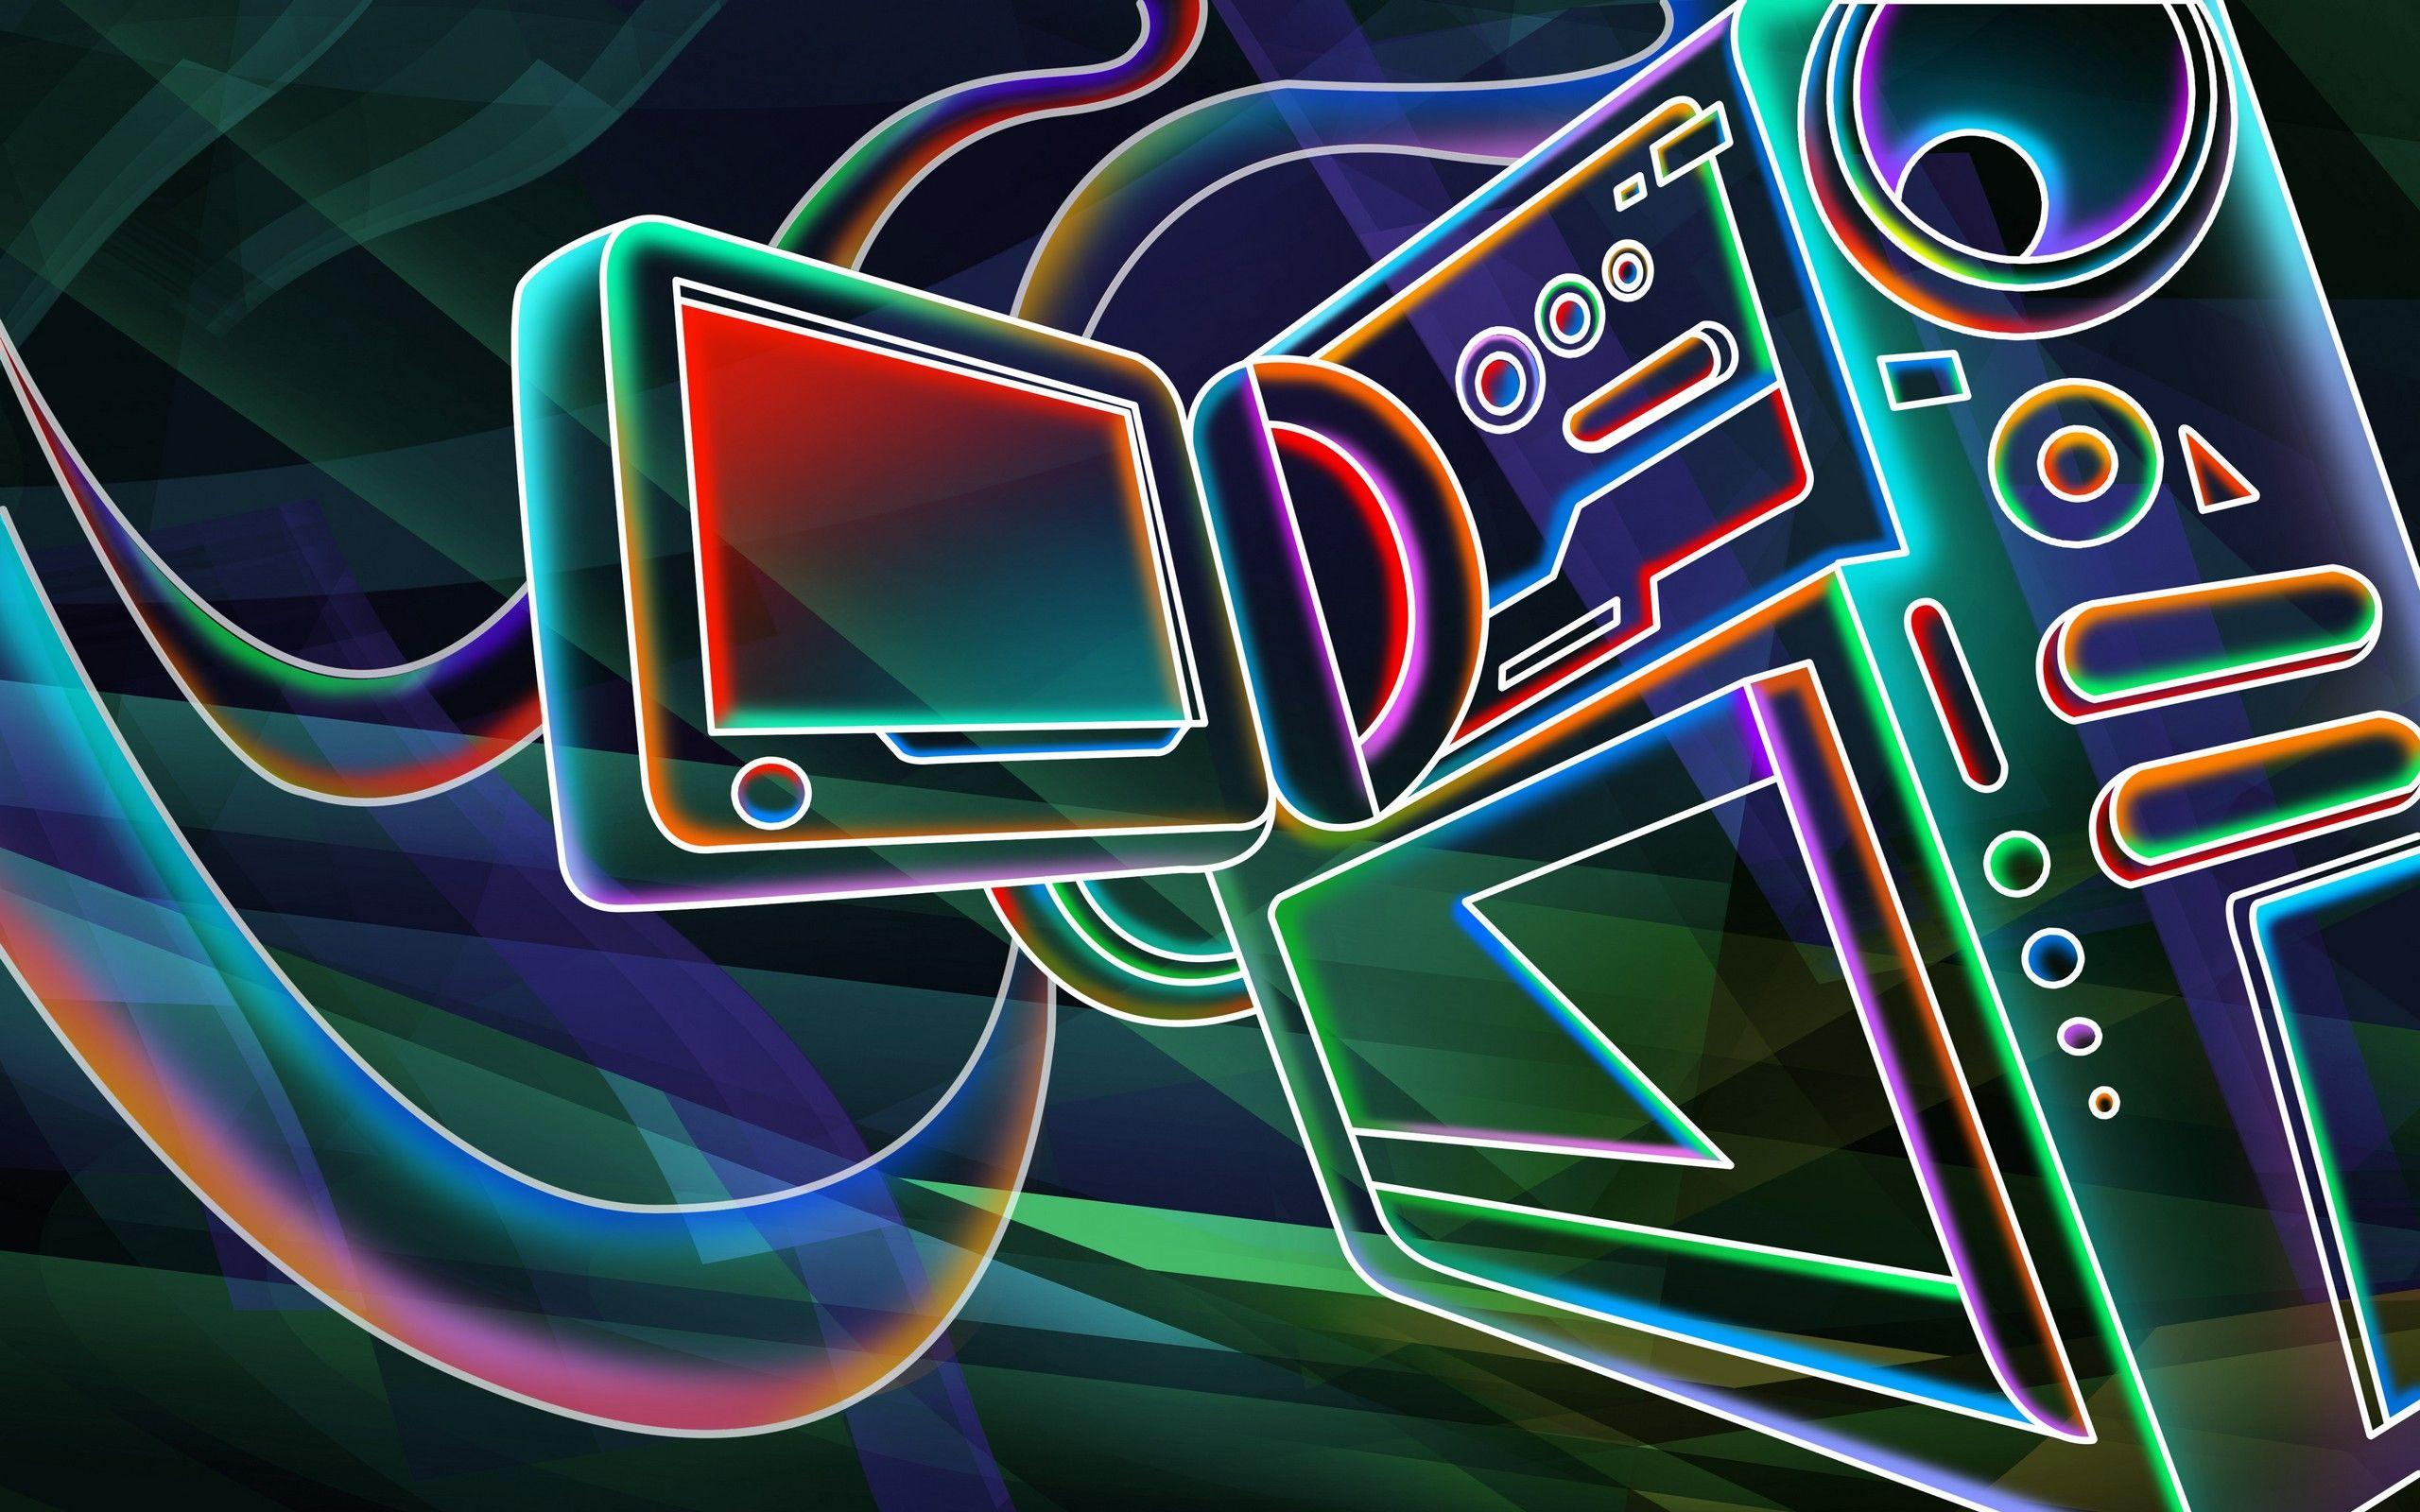 Download 76 Wallpaper 3d Neon Paling Keren